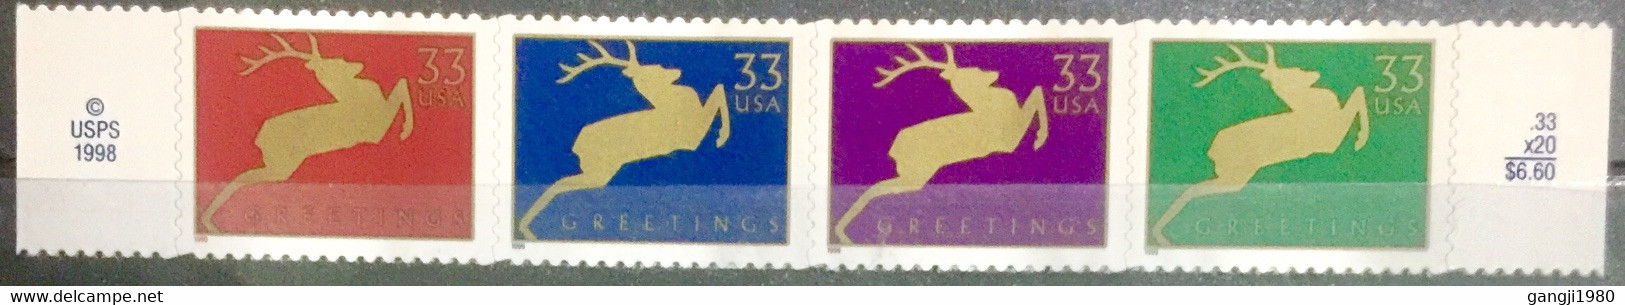 USA 1999 MNH STAMP ON GREETINGS BOOKLET PANE STAMP - America (Other)